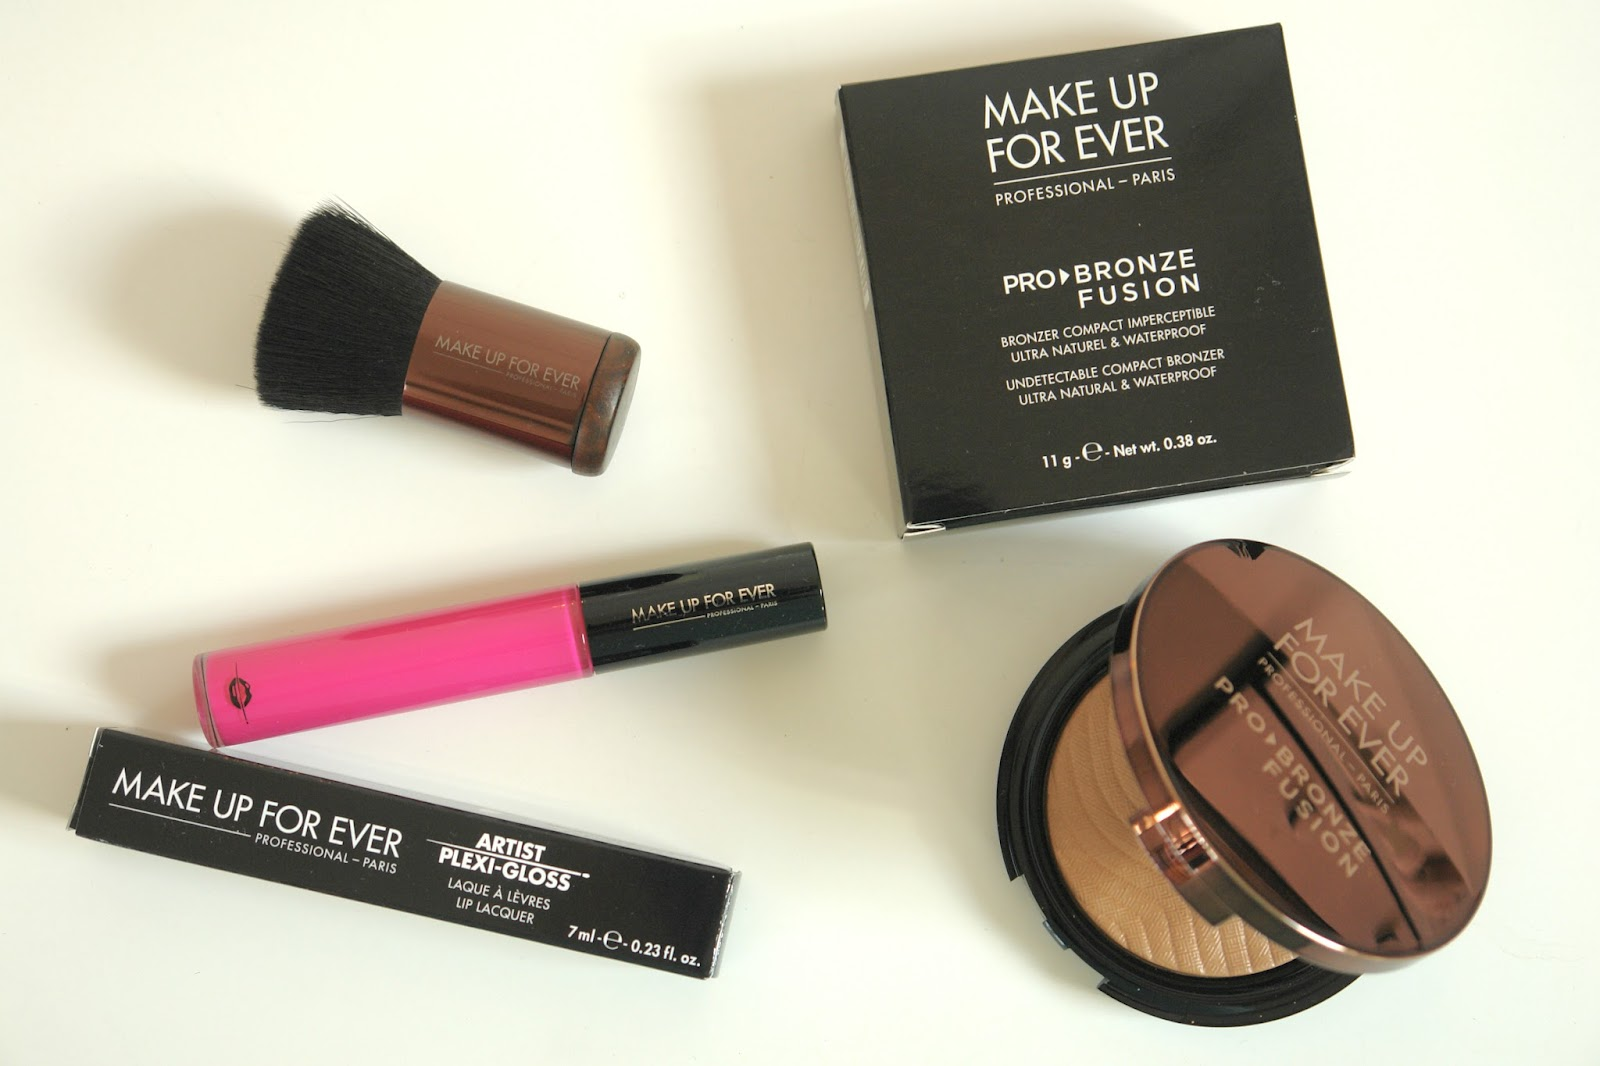 Make Up For Ever coming to Debenhams!, Make Up For Ever Artist Plexi-Gloss Lip Lacquer in 209 Fuchsia Pink, Make Up For Ever Pro Bronze Fusion in 20M, Make Up For Ever Pro Bronze Fusion Kabuki (136 Straight & Wavy), Make Up For Ever, make up, beauty, review, brushes, bronzer, lip gloss,